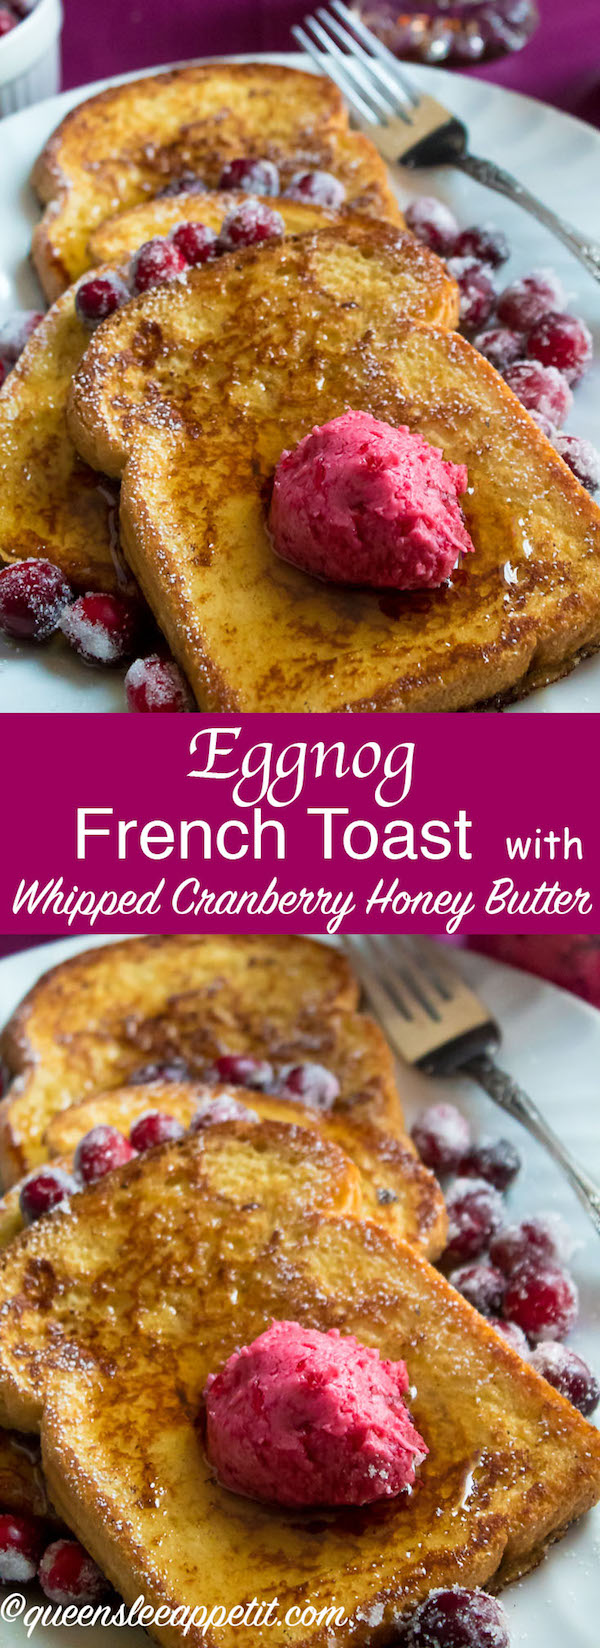 Enjoy thick slices of fluffy Eggnog French Toast — a perfect breakfast for Christmas morning. Serve with a dust of powdered sugar, a drizzle of pure maple syrup and a dollop of Whipped Cranberry Honey Butter!